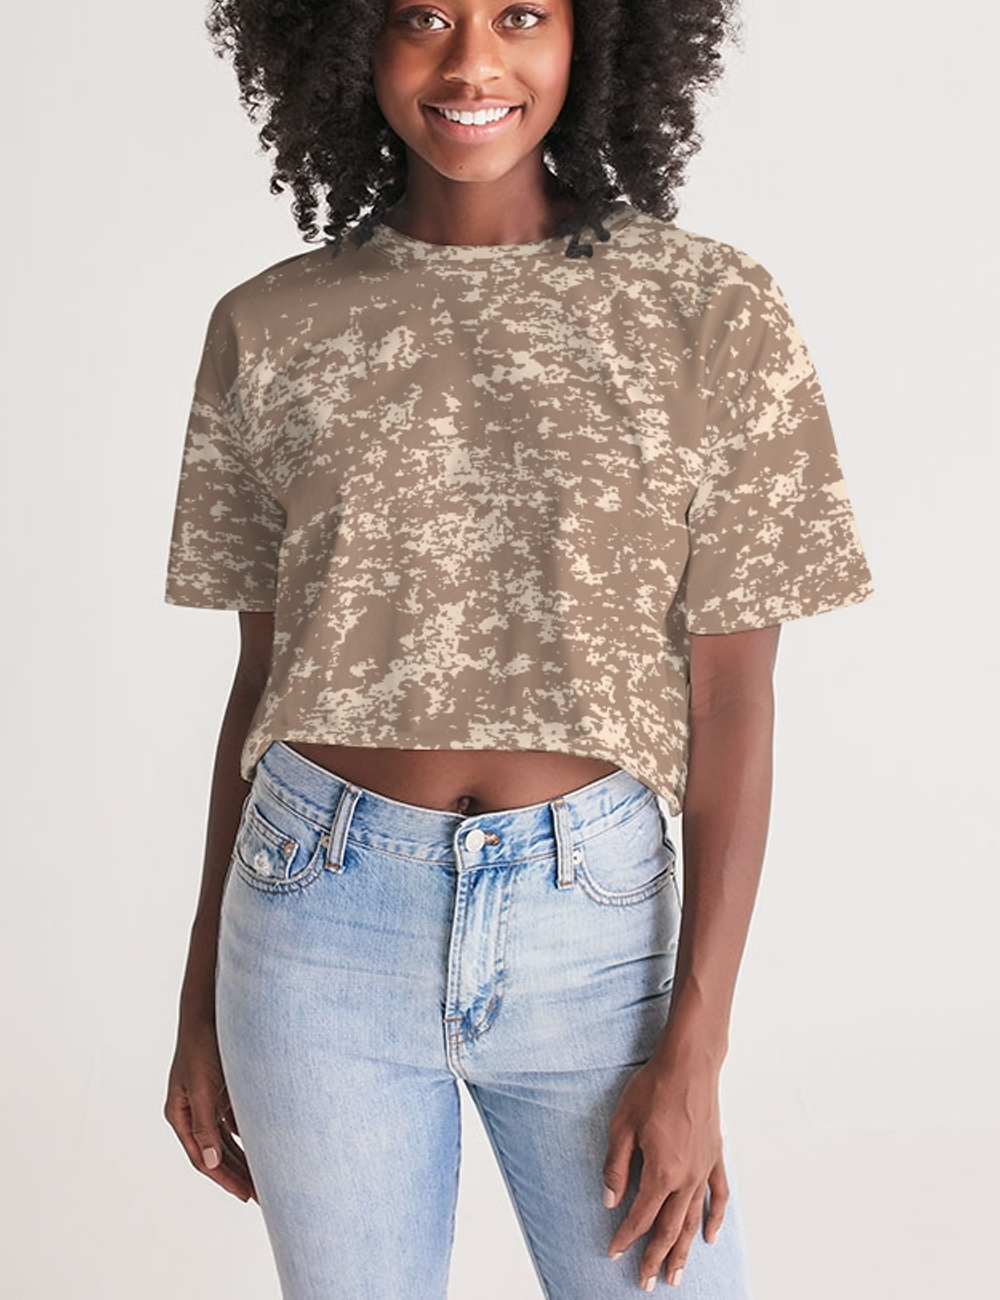 Desert Storm | Women's Oversized Crop Top T-Shirt